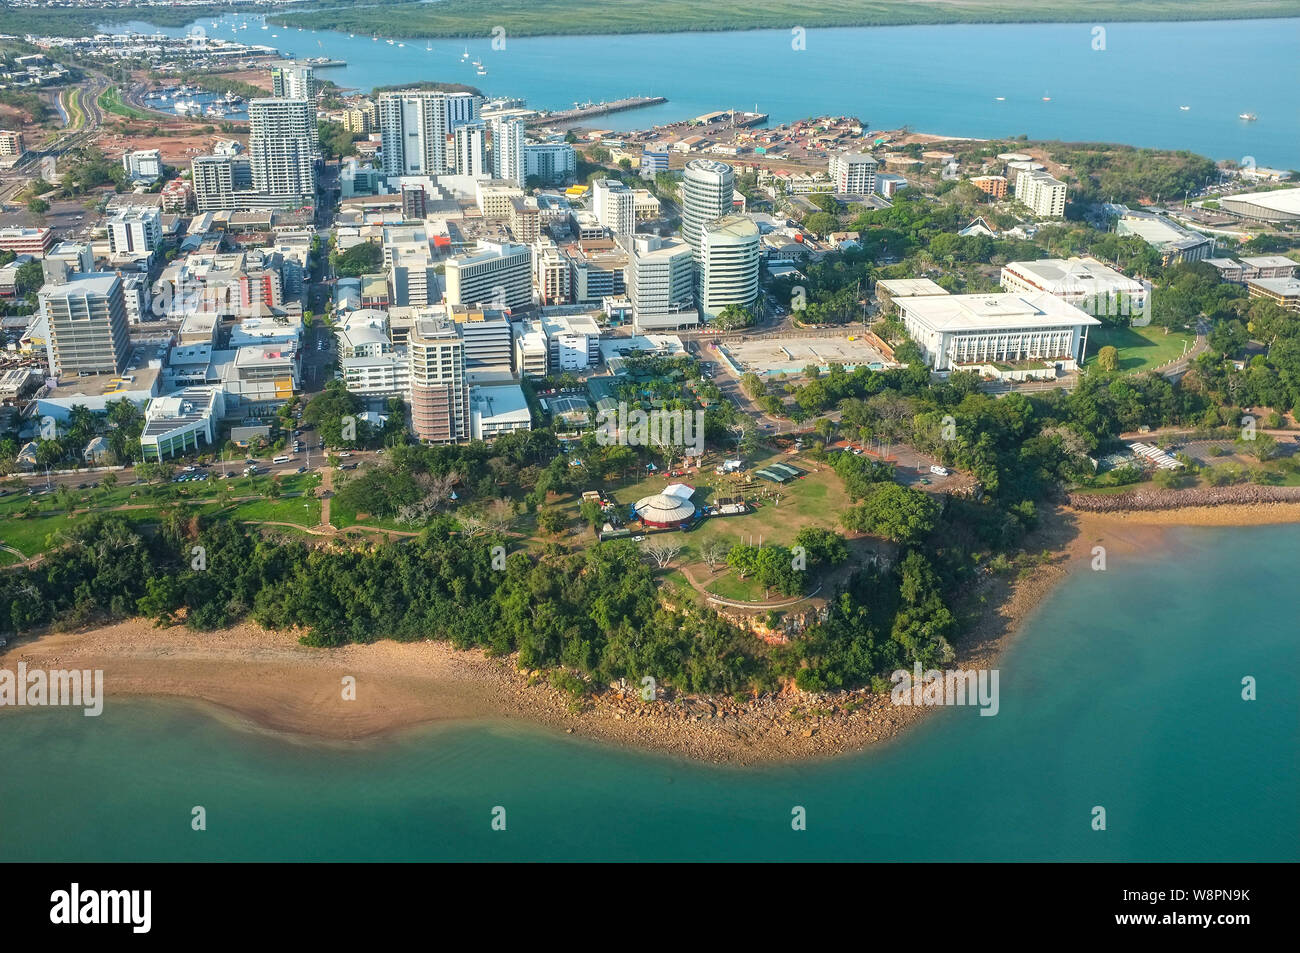 the-city-of-darwin-capital-city-of-the-n